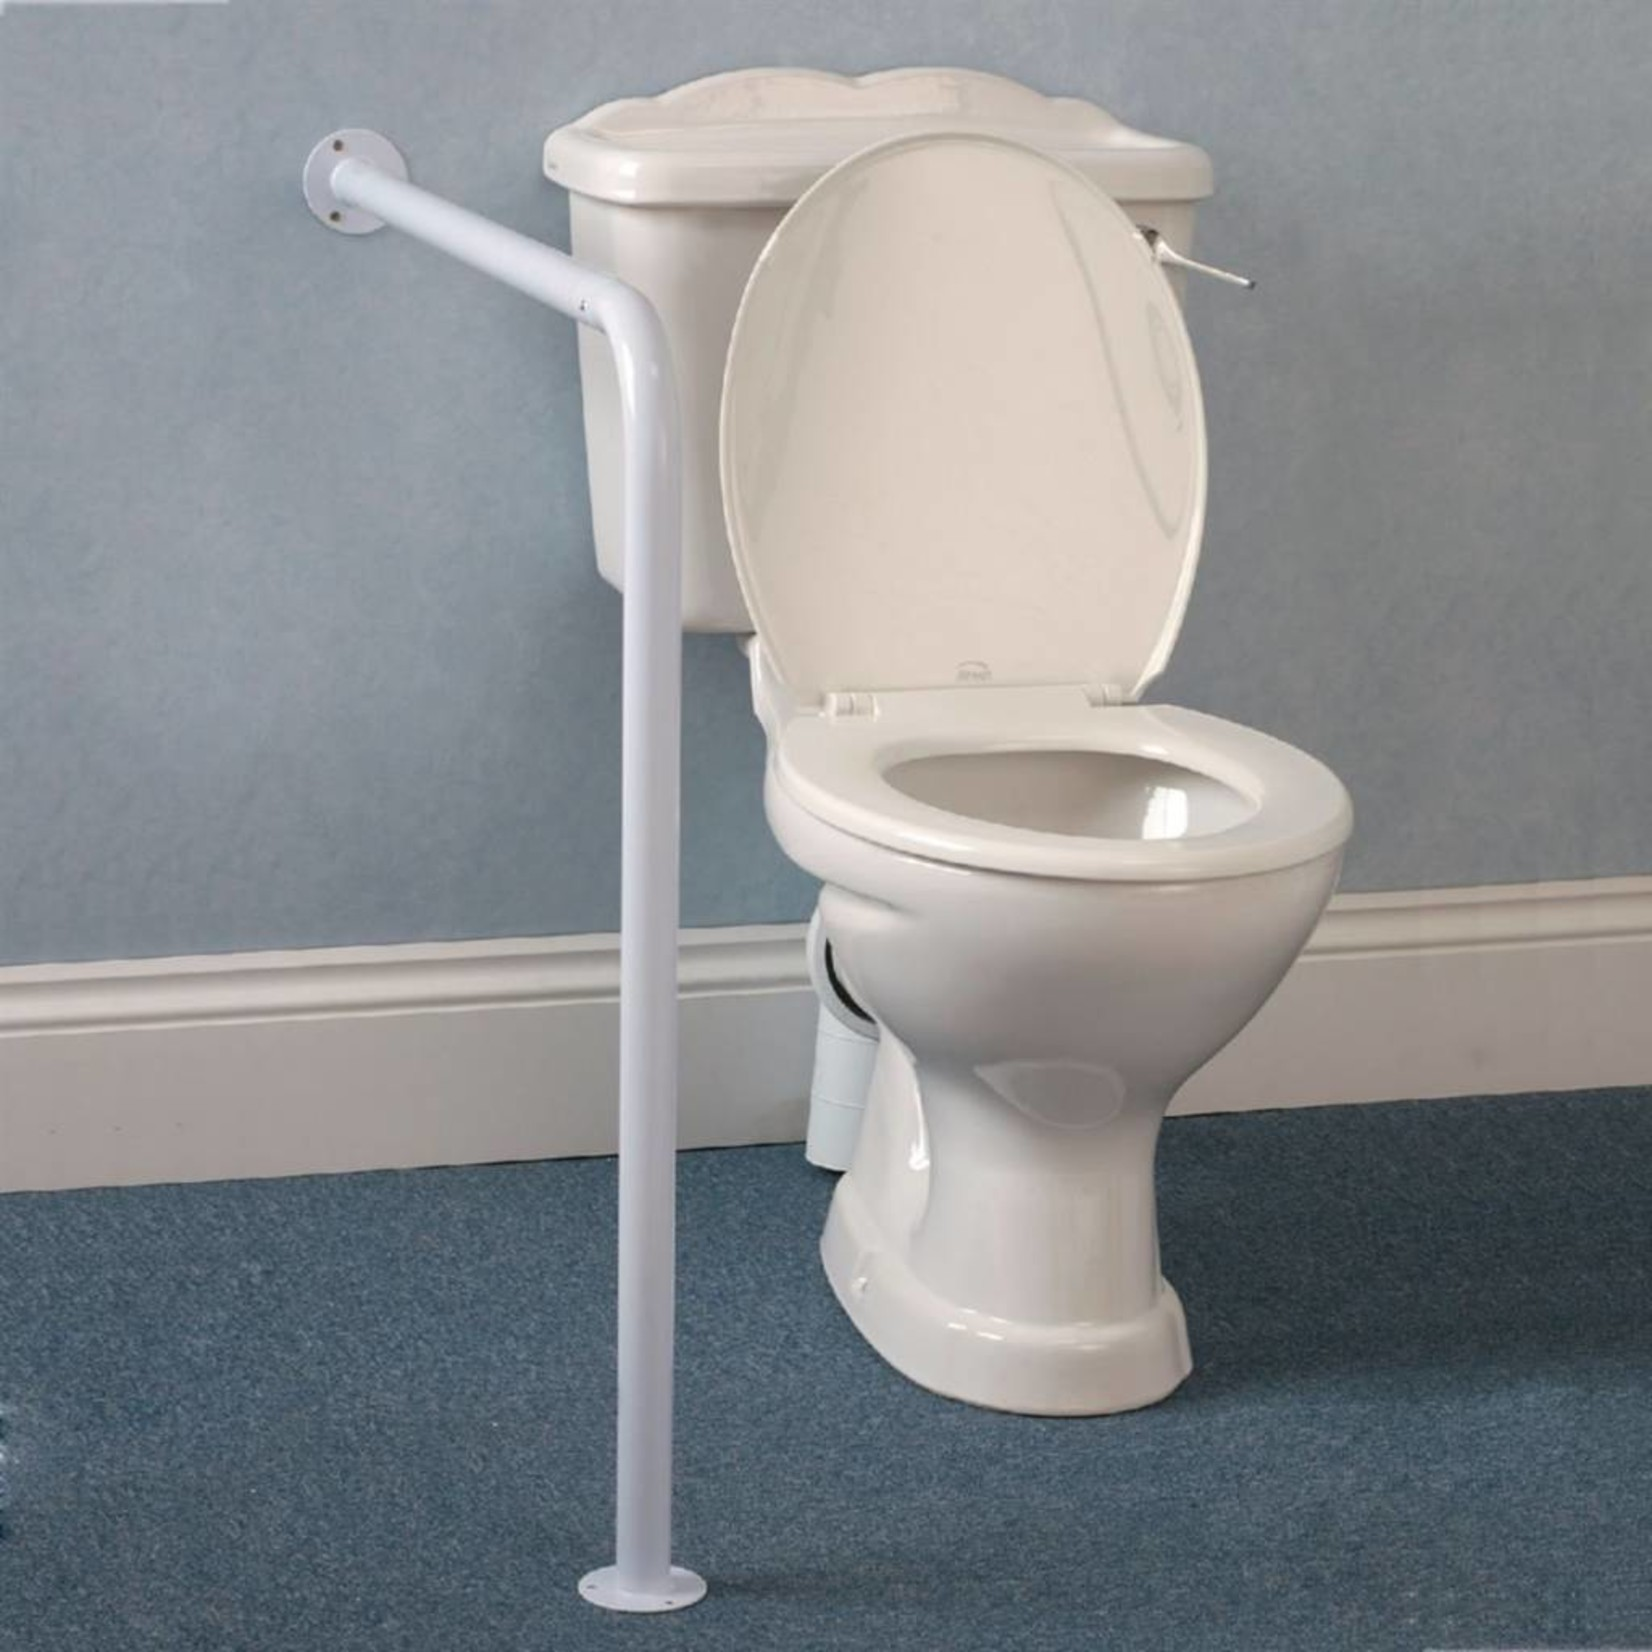 Wall to Floor Grab Bar - White